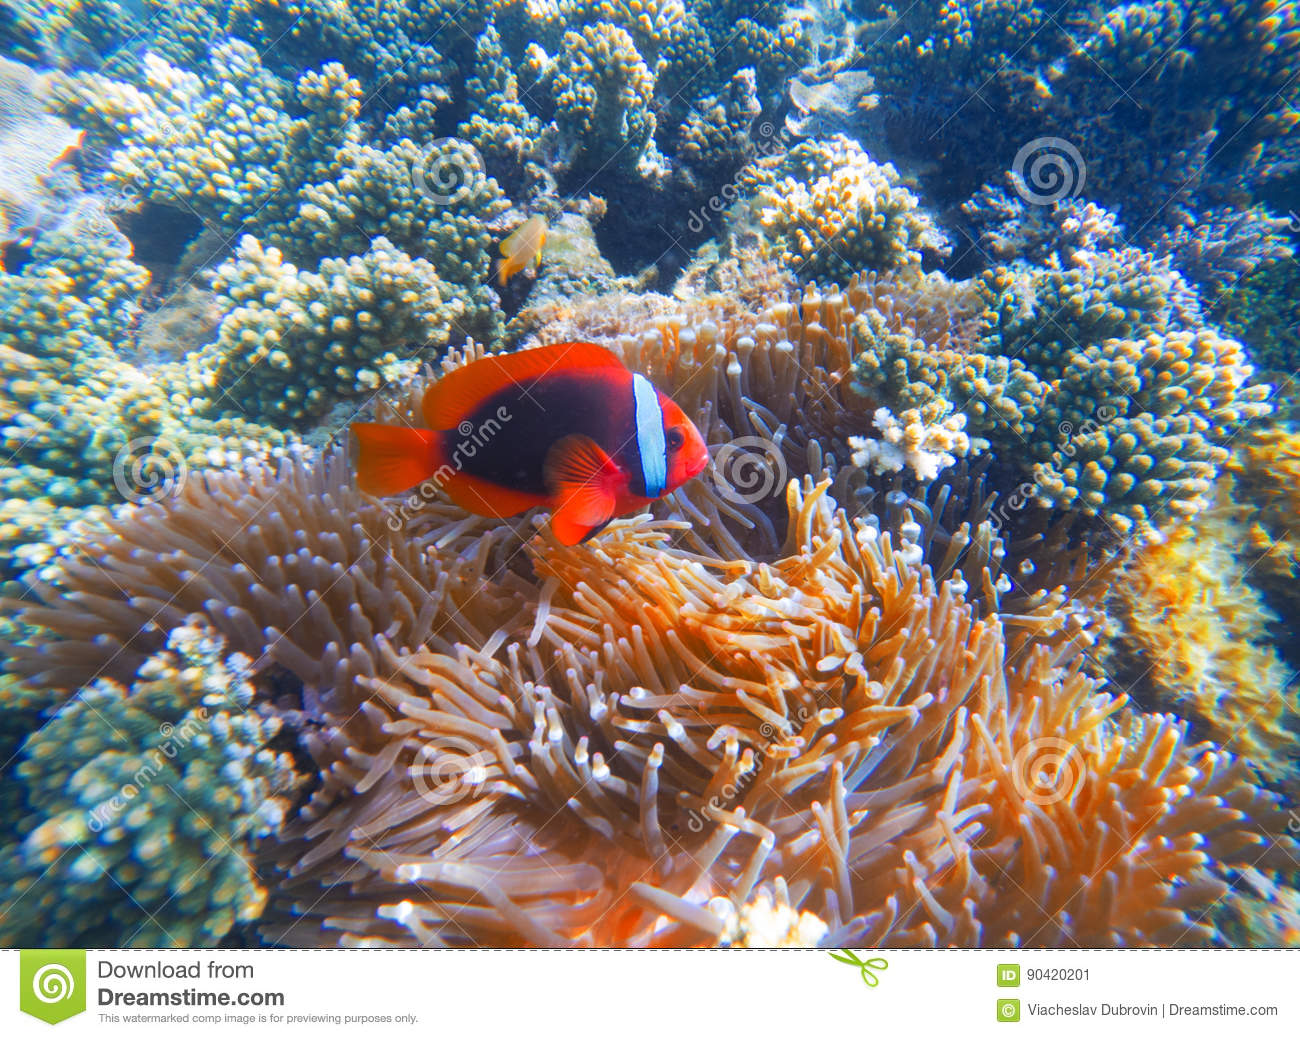 Rode clownvissen in actinia close-upfoto Clownfish in koraalrif